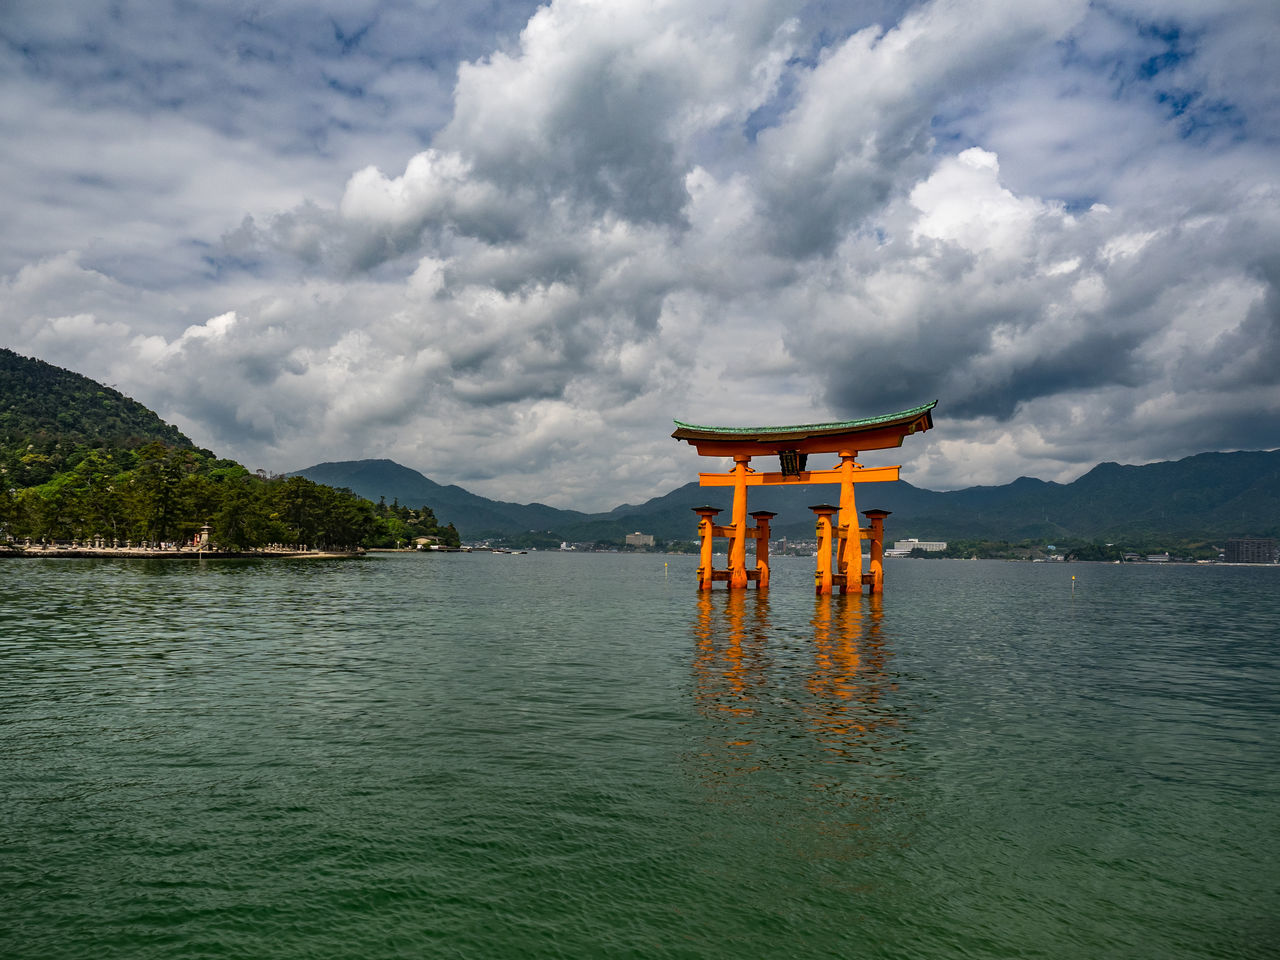 The holy arch, and gate way to the sacred island. Arch Beauty In Nature Blue Cloud Holy Island Japan Landscape Miyajima Nature No People Non-urban Scene Outdoors Overcast Remote Sacred Scenery Scenics Sky Tranquil Scene Travel Destinations Ultimate Japan Water Waterfront Weather